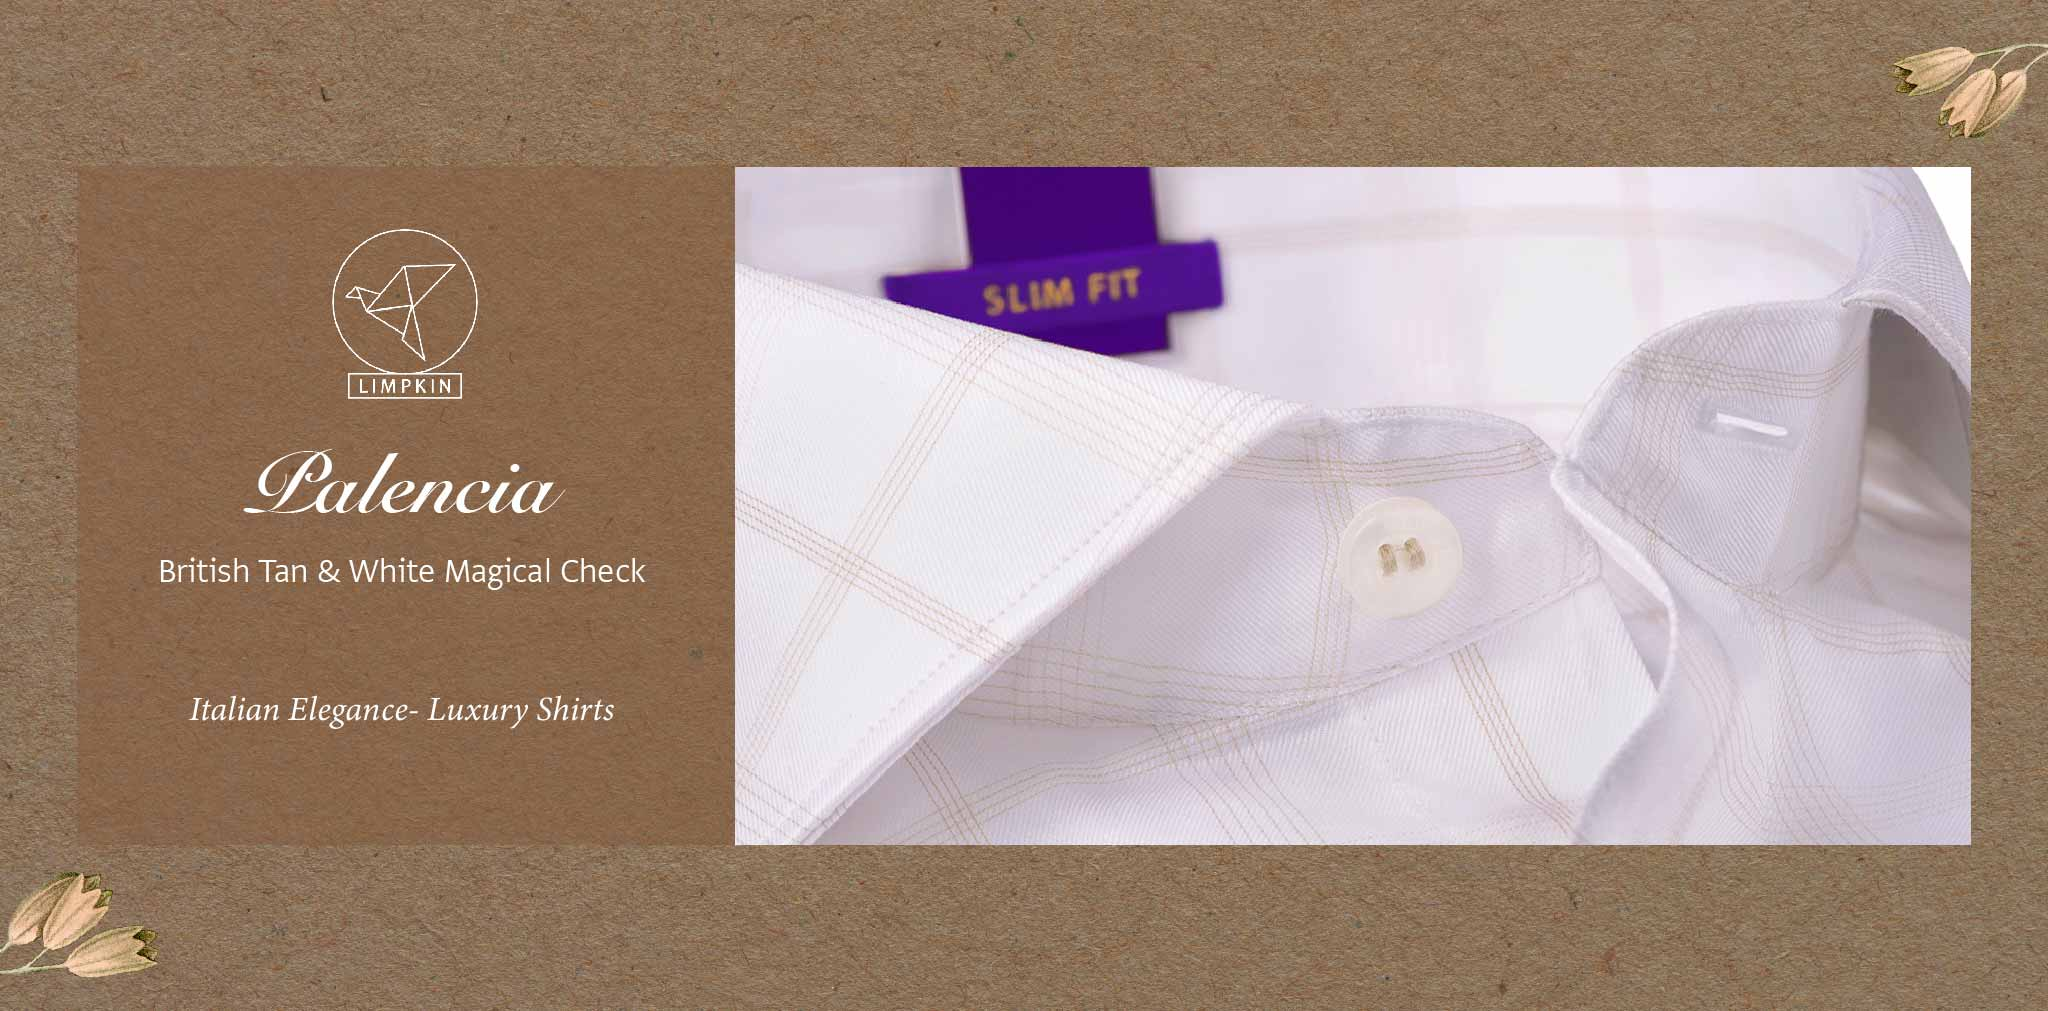 Palencia- British Tan & White Magical Check- 2 Ply Pure Egyptian Giza Cotton- Delivery from 26th Sept - Banner